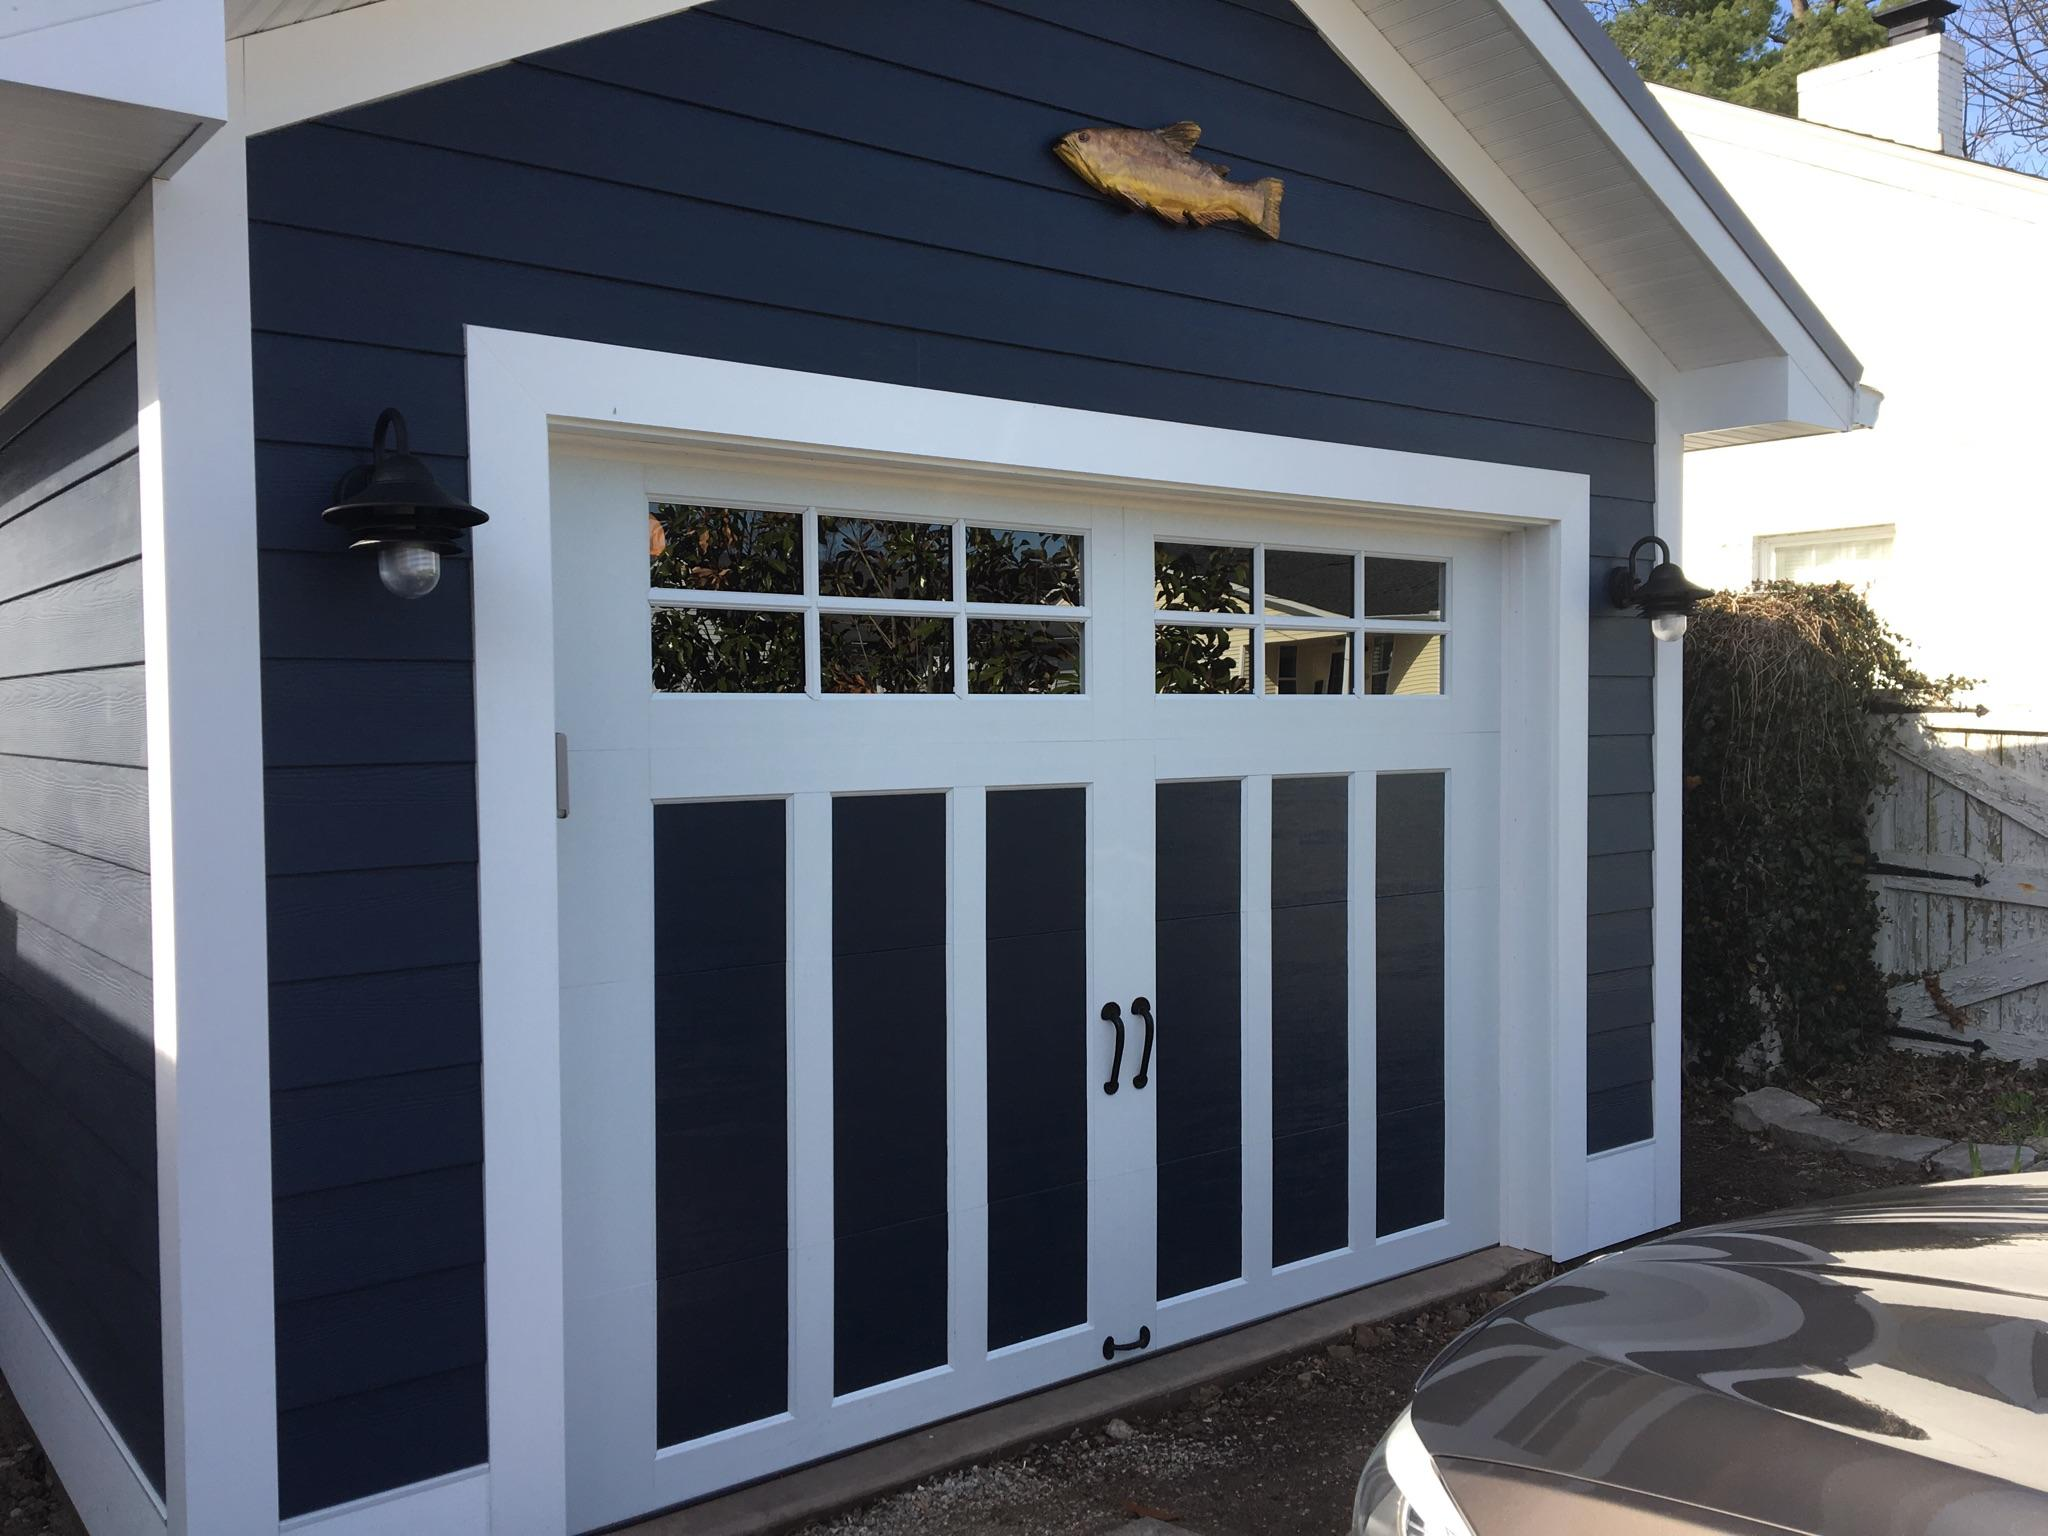 Schalco Garage Doors Newburgh Indiana In